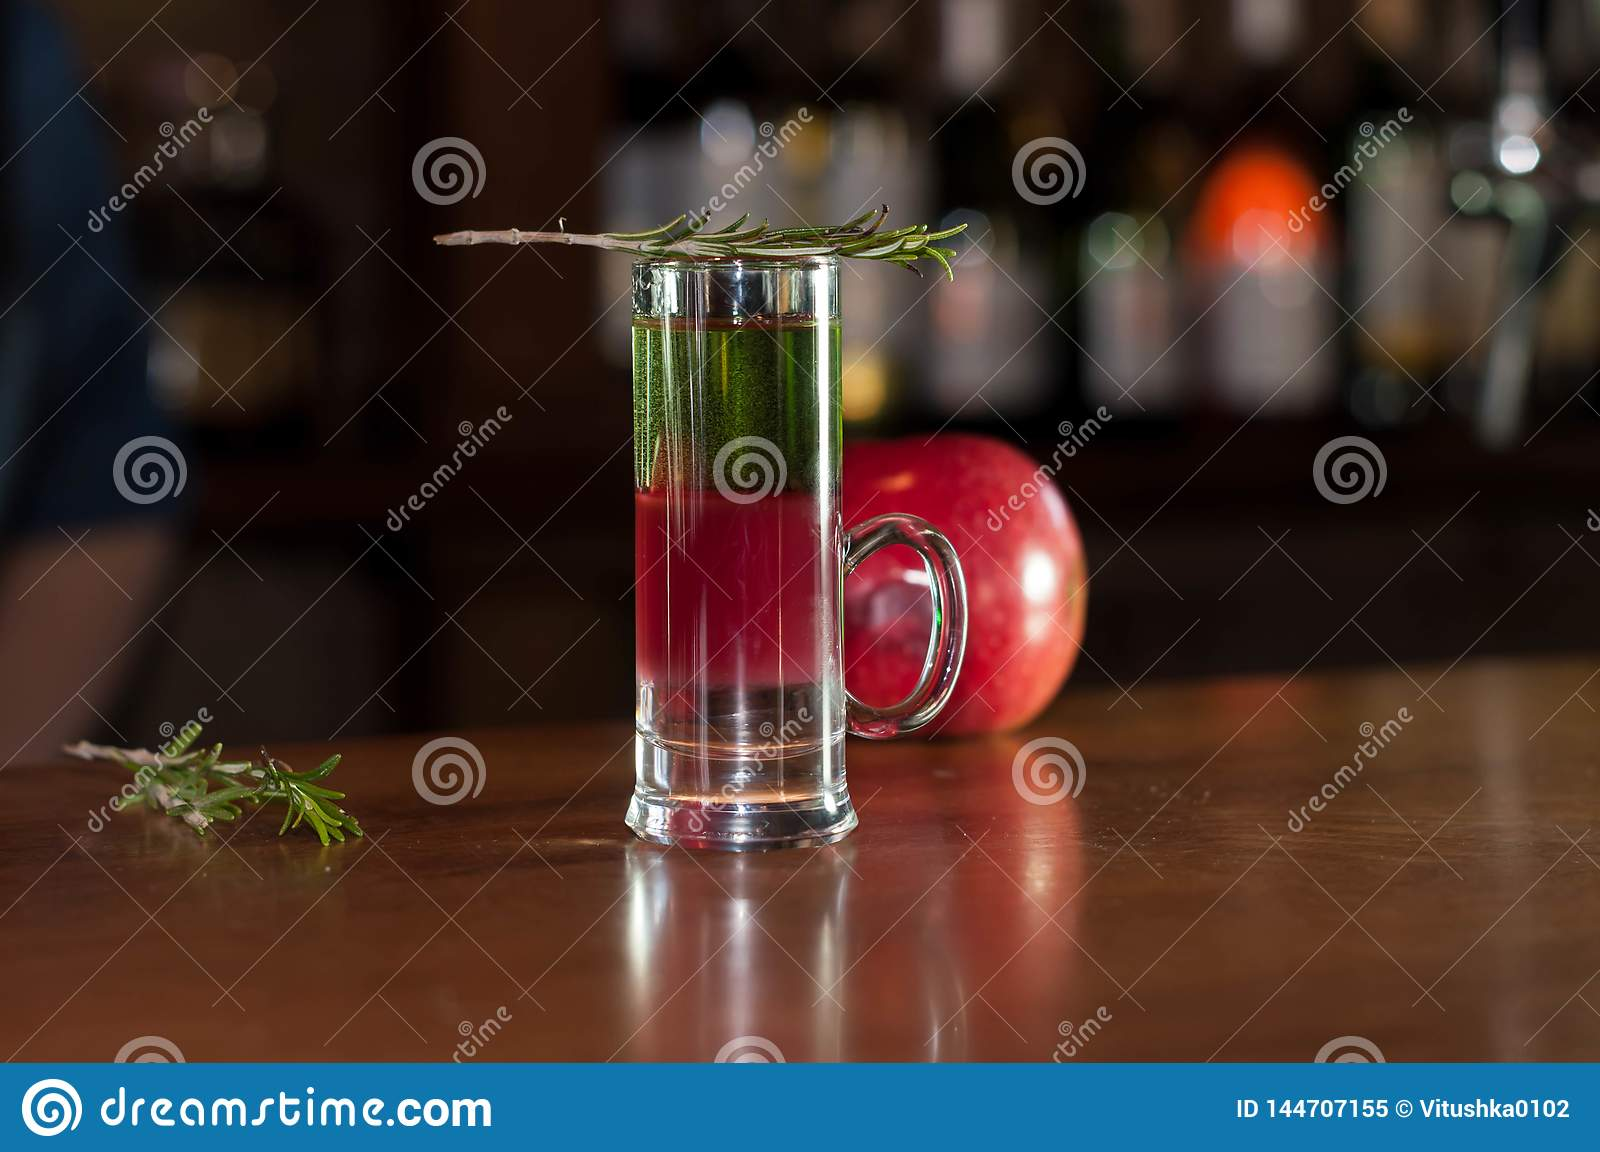 Shot glass with multicolored alcohol drink and rosemary on near red apple